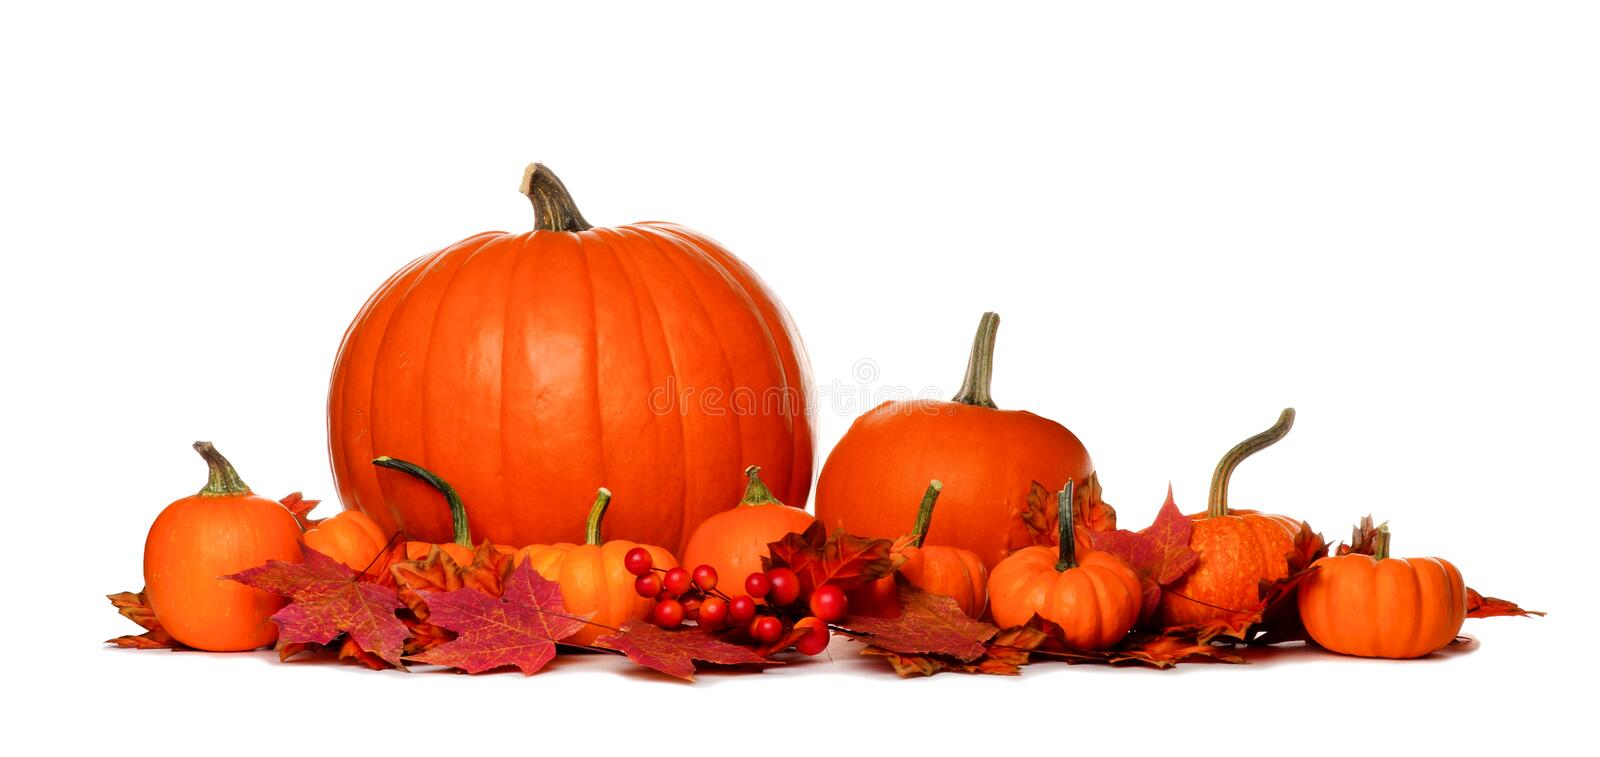 Autumn pumpkins and fall leaves border isolated on white stock photo